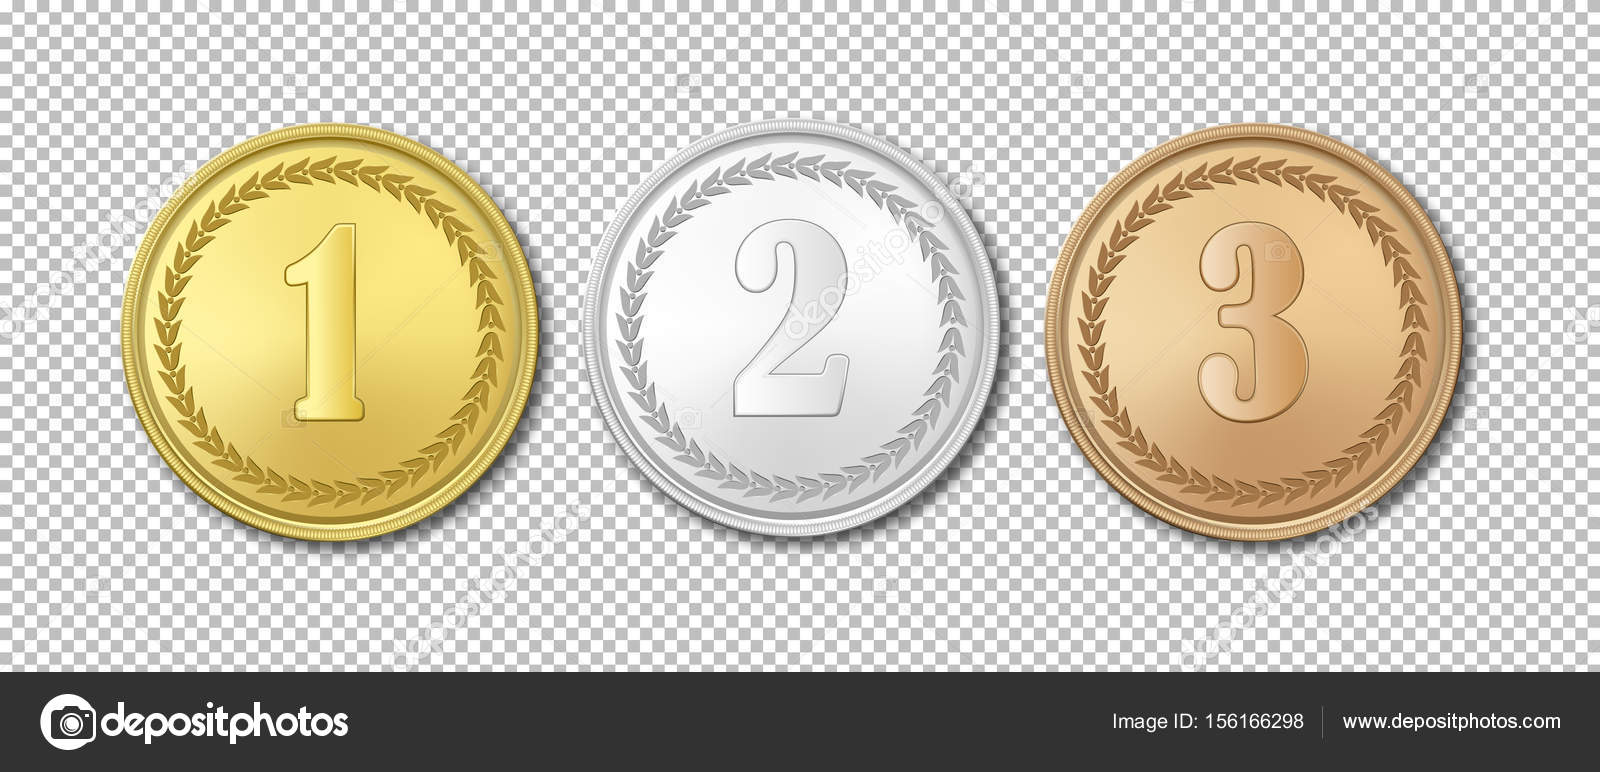 Realistic vector gold, silver and bronze award medals icon set